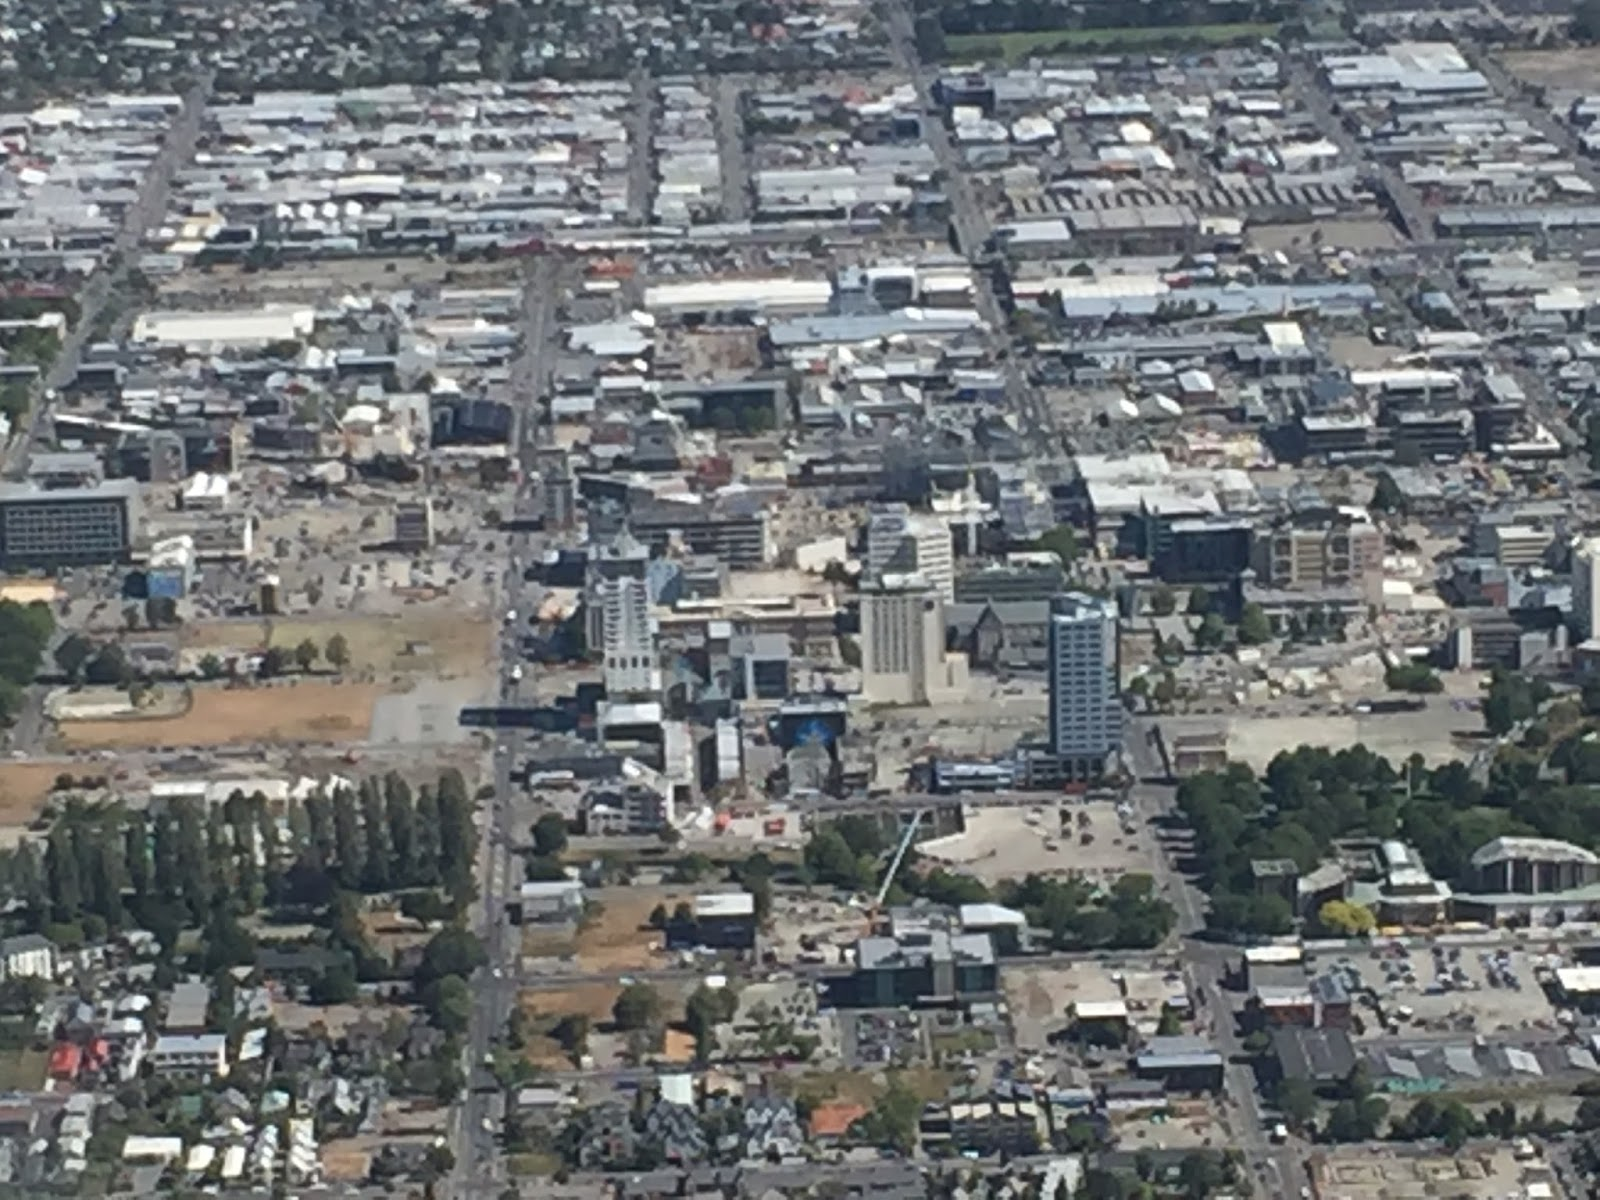 christchurch earthquake It has been five years since a major earthquake hit the new zealand city of christchurch, but thousands of residents are still waiting for their homes to be repaired or rebuilt, writes michael ertl.